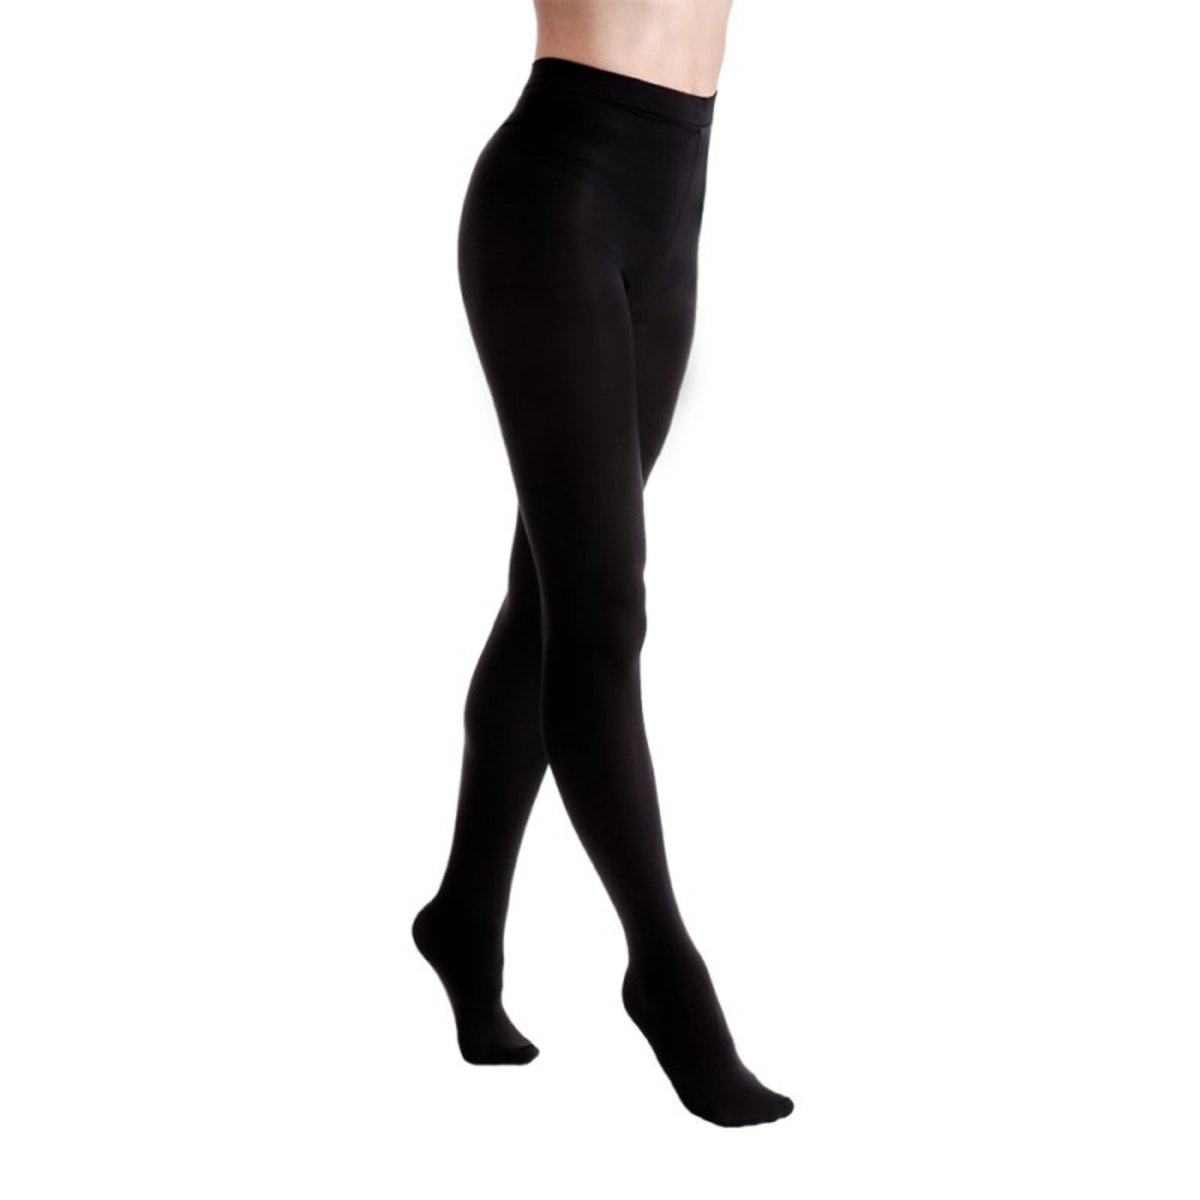 punčocháče LEGWEAR - Fashion velvet fleece lined - Black - OHFFTG2VB1 M